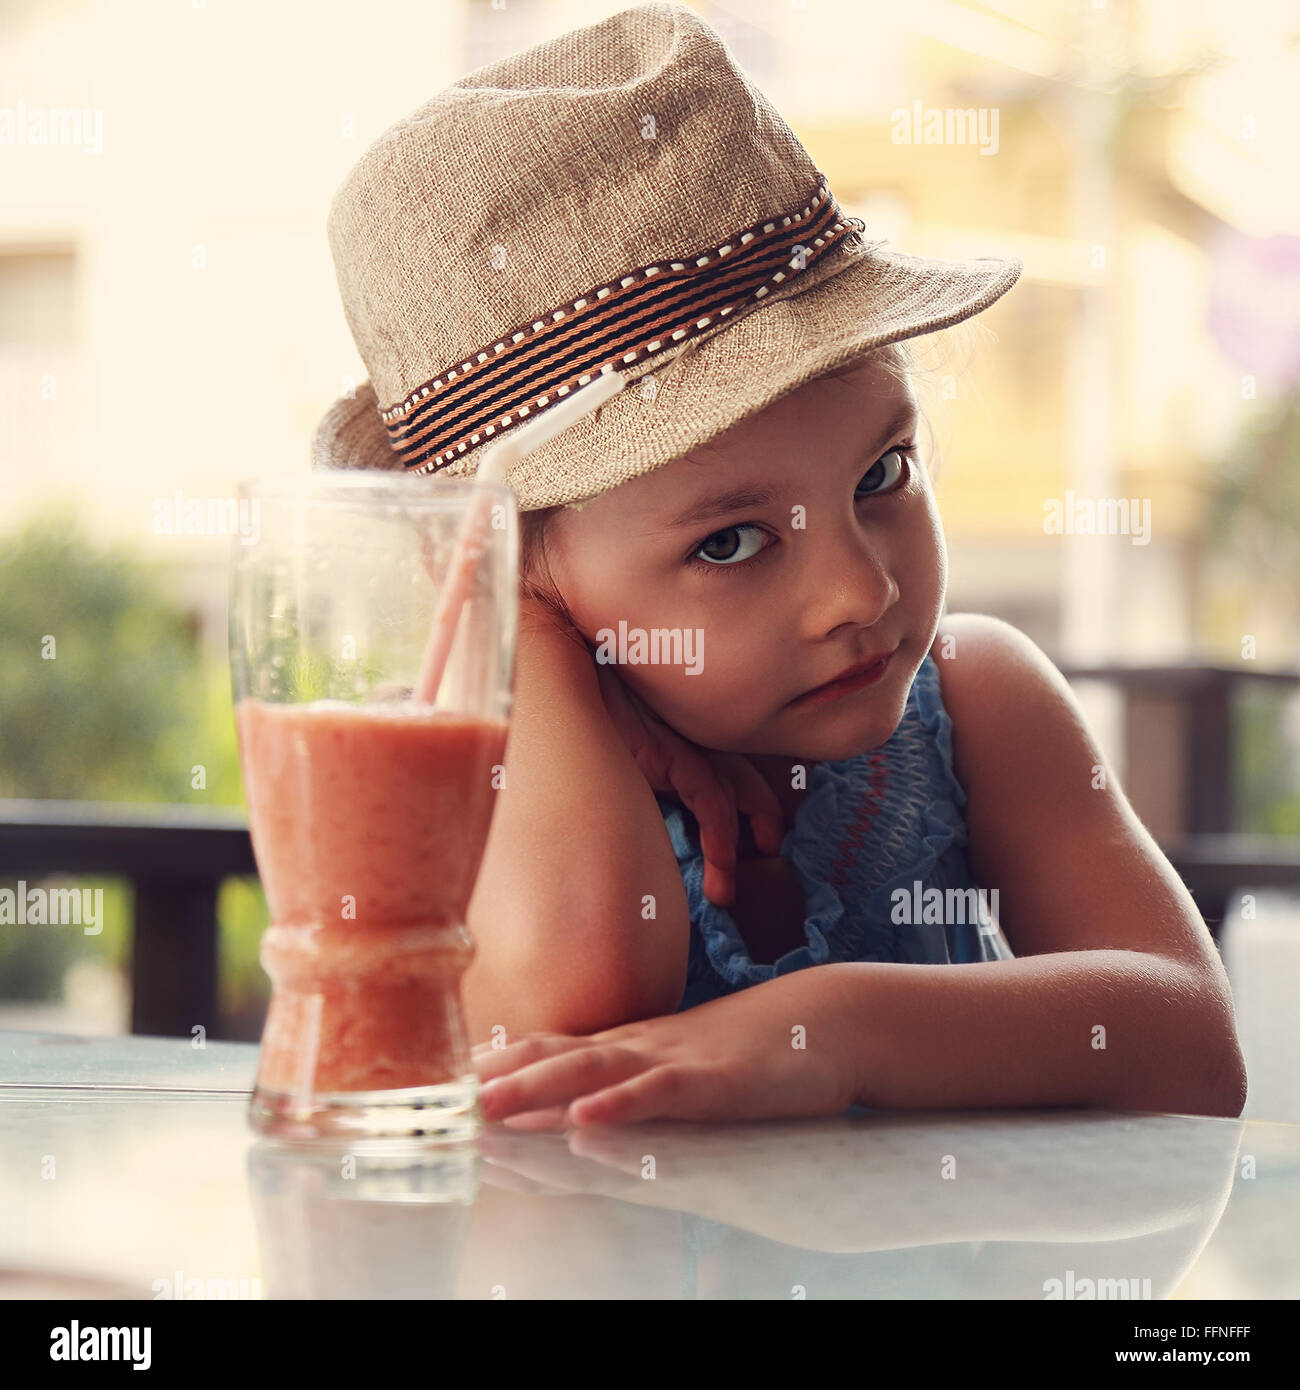 Alone unhappy kid girl sitting in restaurant and does not want to drink healthy juice on summer background - Stock Image